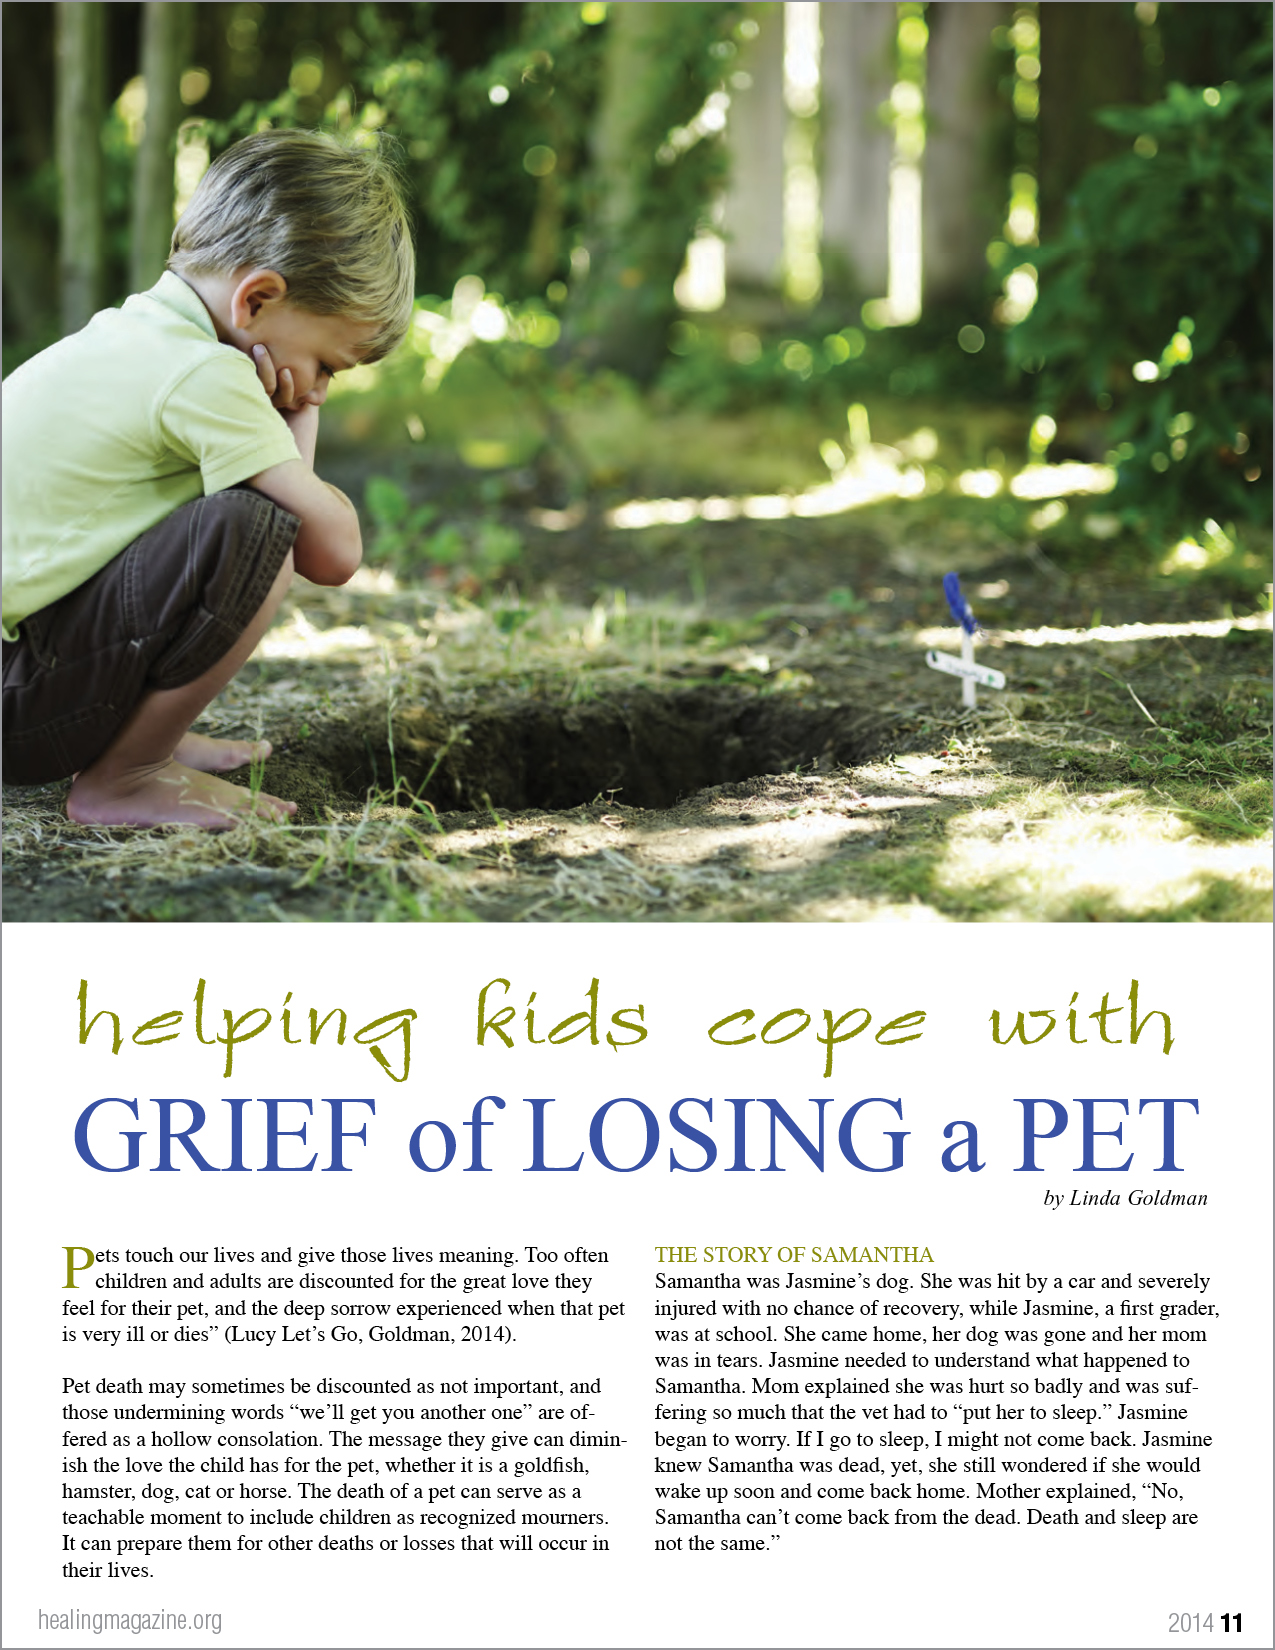 Breaking-the-Silence-by-Linda-Goldman-Child-Grieving-Therapist-MD-Washington-DC.jpg